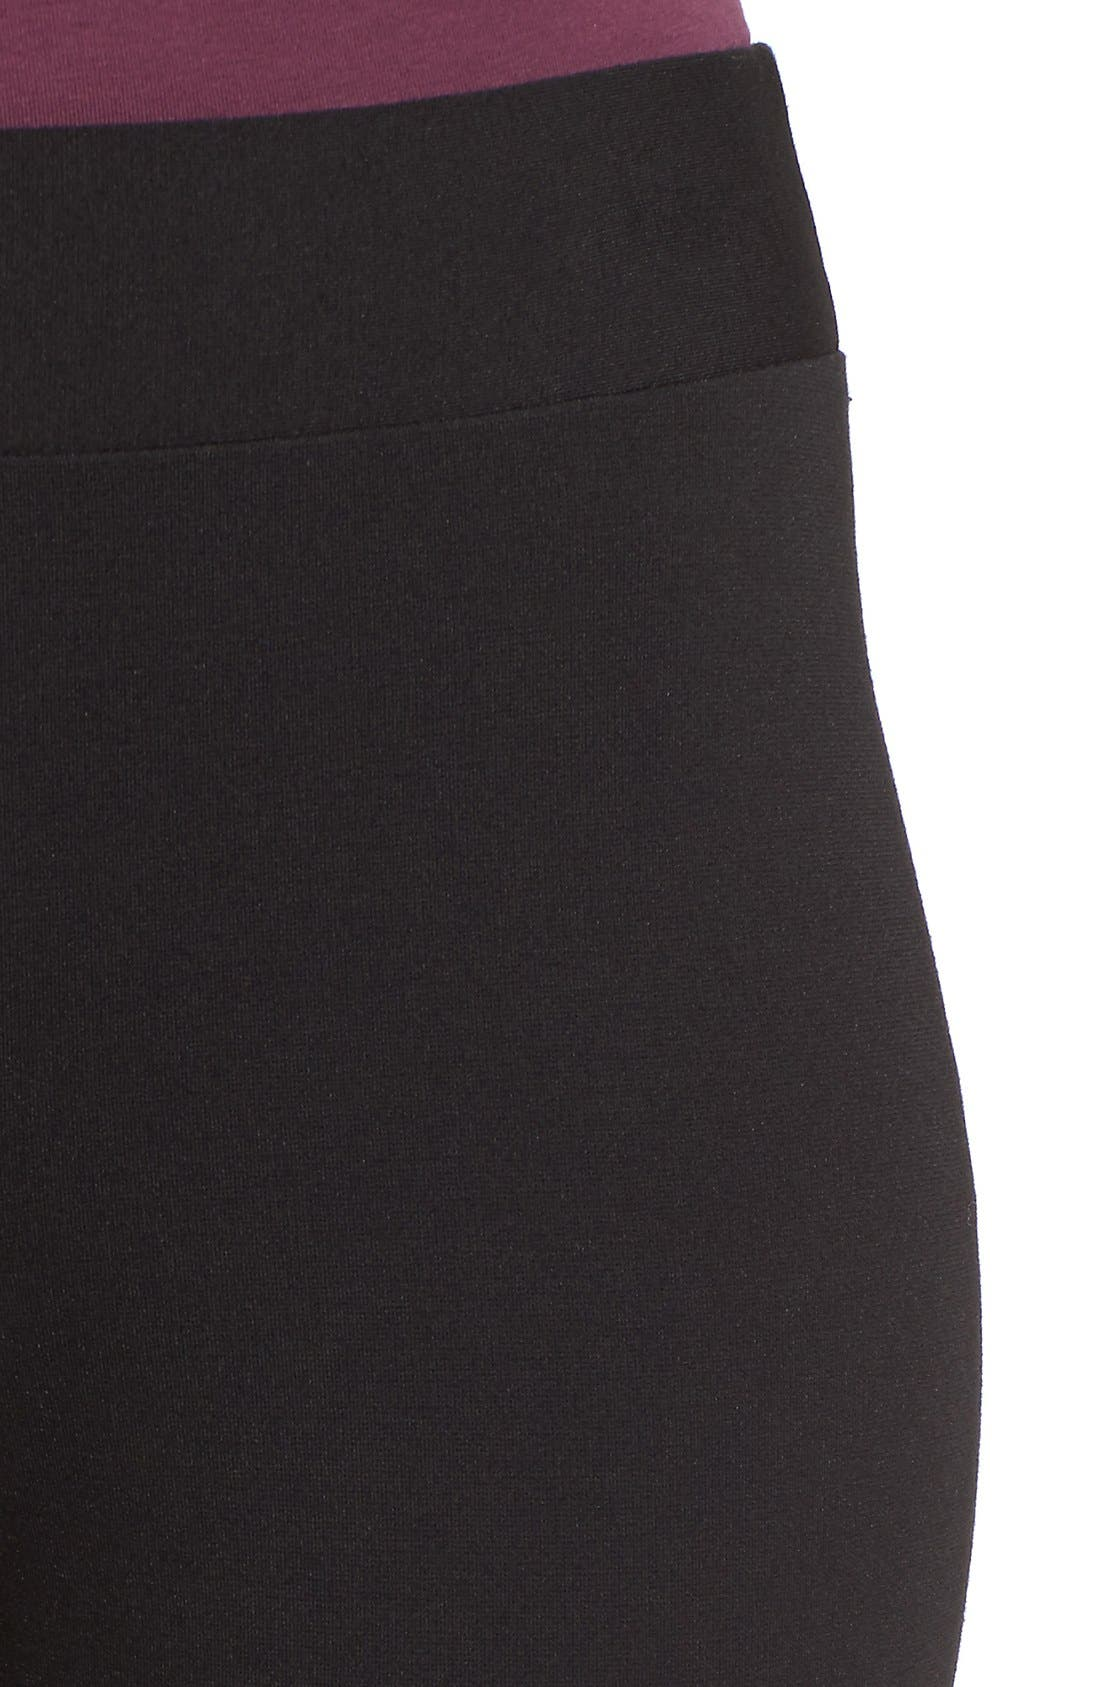 Alternate Image 4  - Two by Vince Camuto Seamed Back Leggings (Regular & Petite)